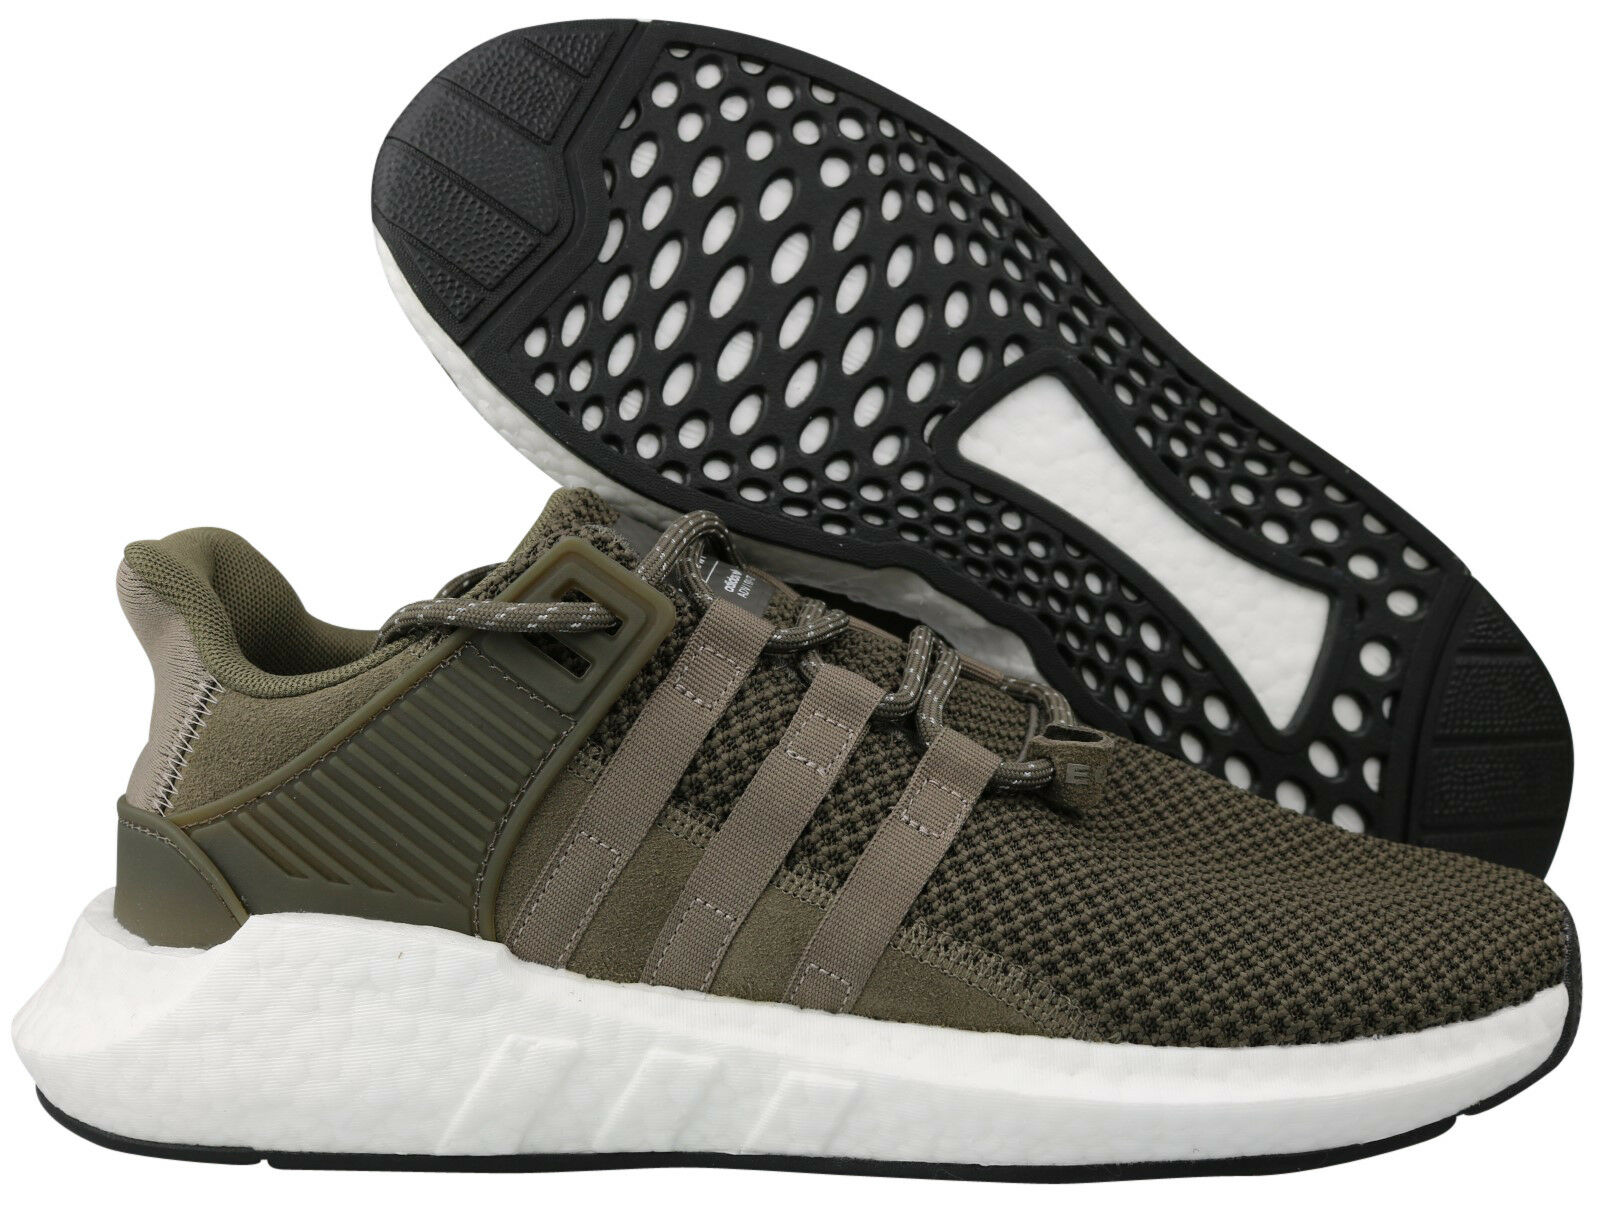 cbf3c80ac00342 ... Adidas EQT EquipHommes t Support Support Support 93/17 Basket  chaussures Taille 43 & 44 ...